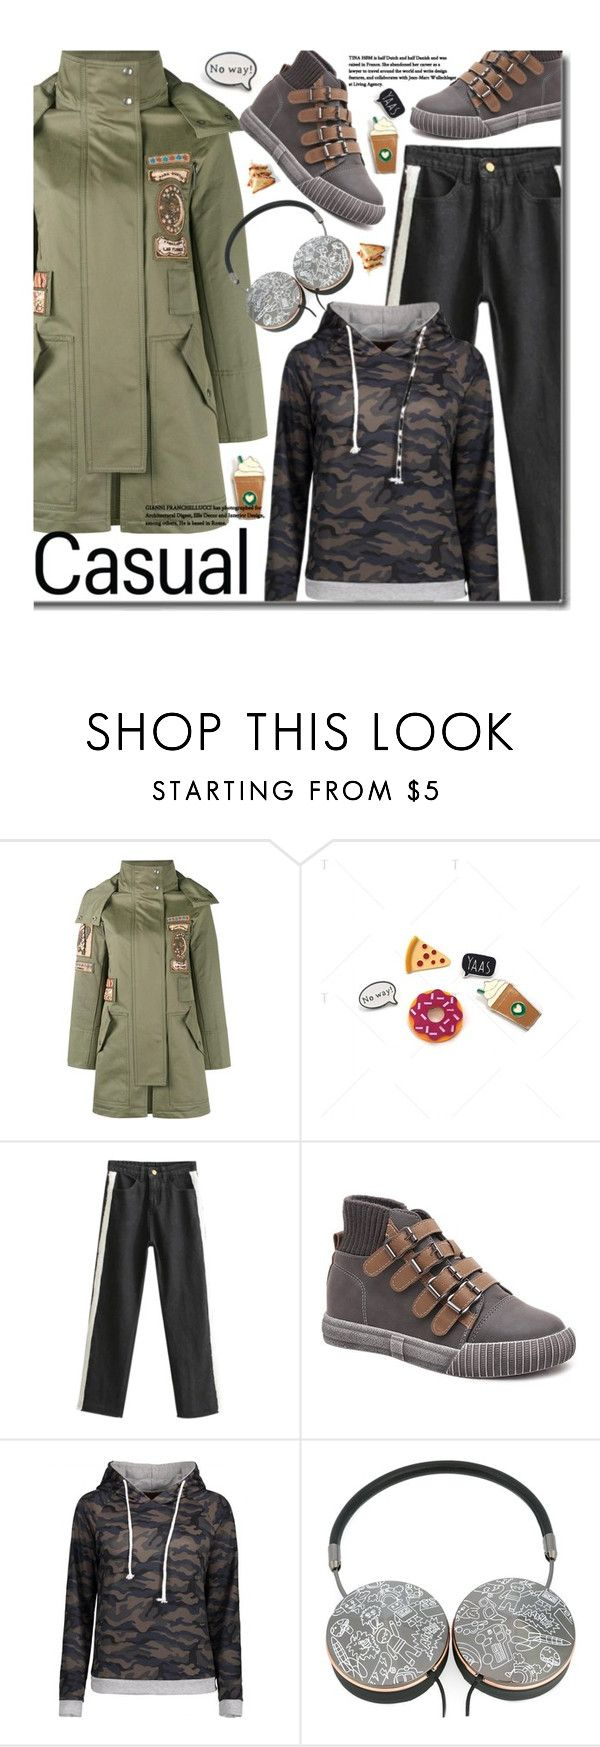 """""""Casual: Camo Hoodie"""" by beebeely-look ❤ liked on Polyvore featuring Valentino, Mira Mikati, vintage, casual, camo, pins, camostyle and twinkledeals"""